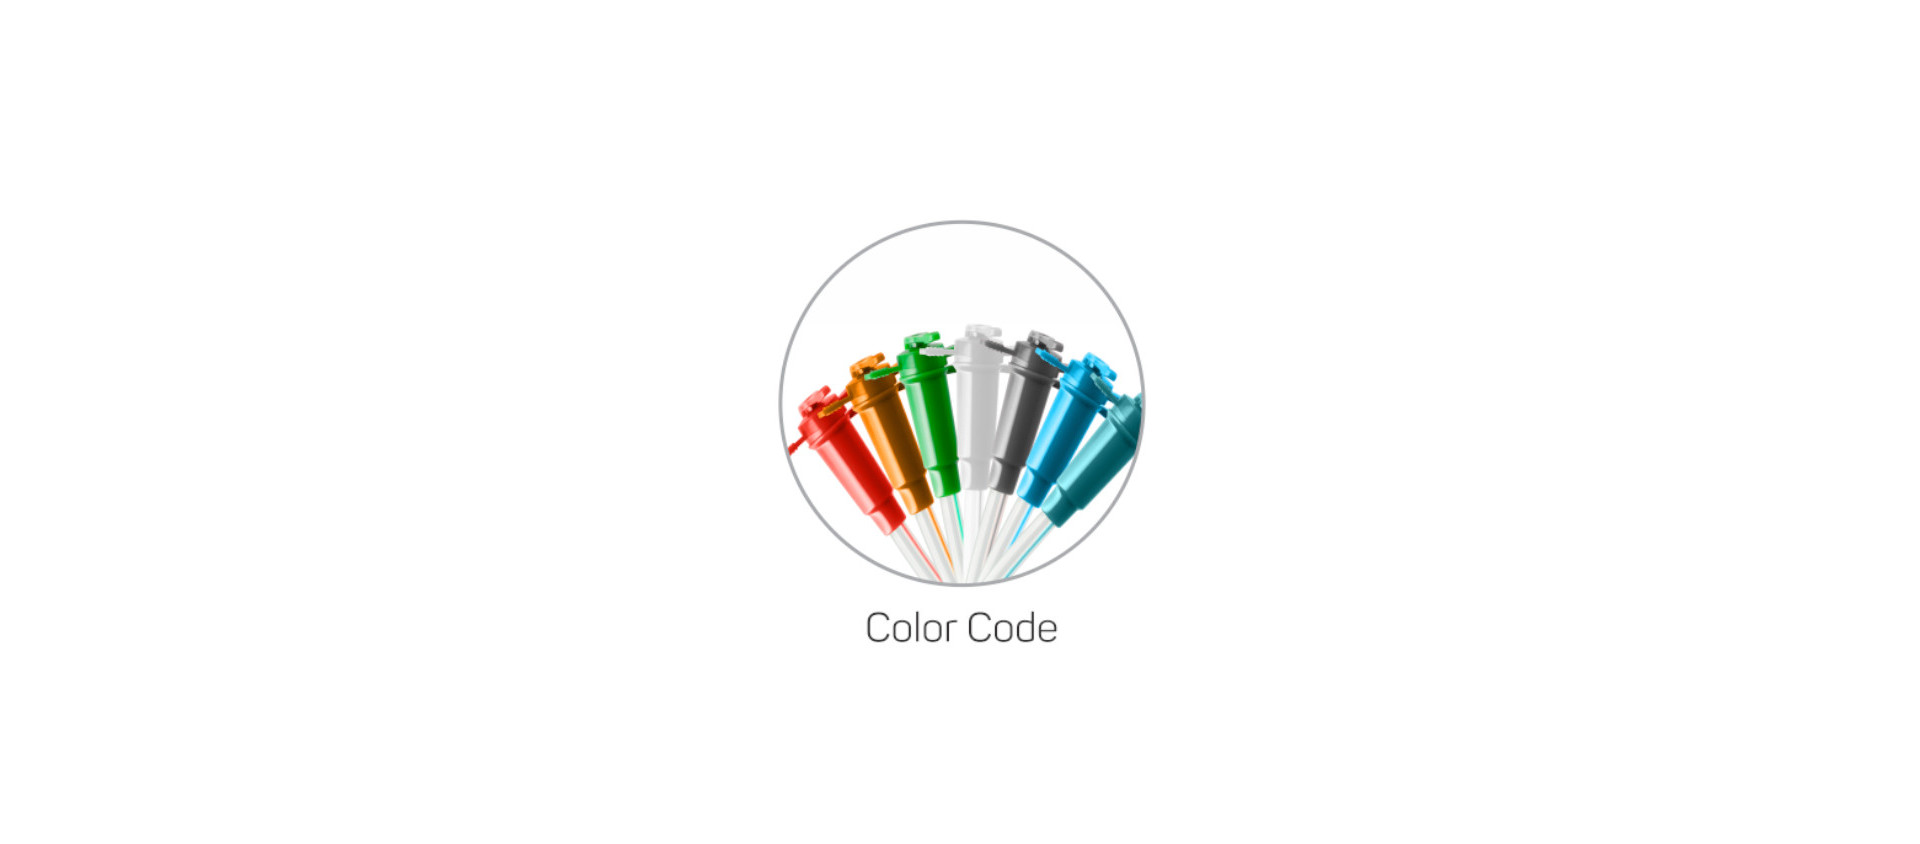 Ryles tube color.jpg